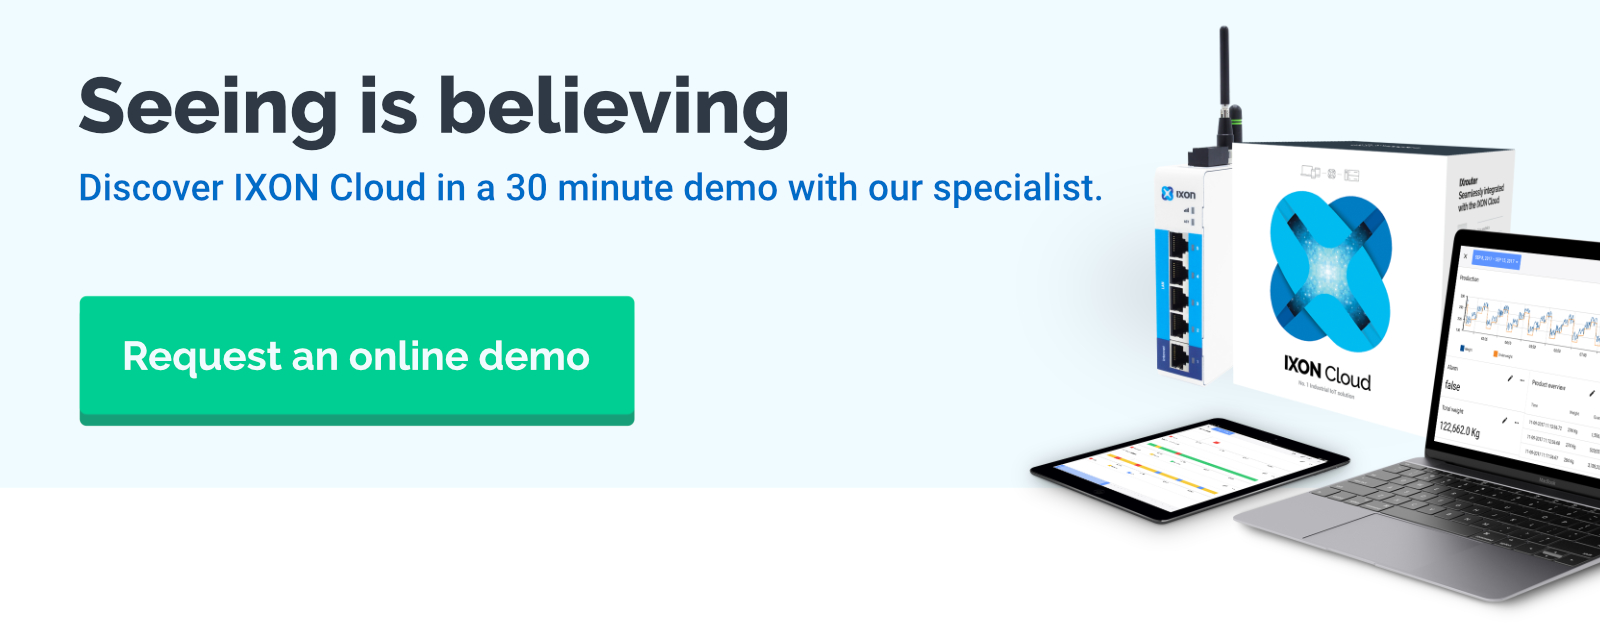 Seeing is believing: Discover IXON Cloud during a 30 minute interactive demo